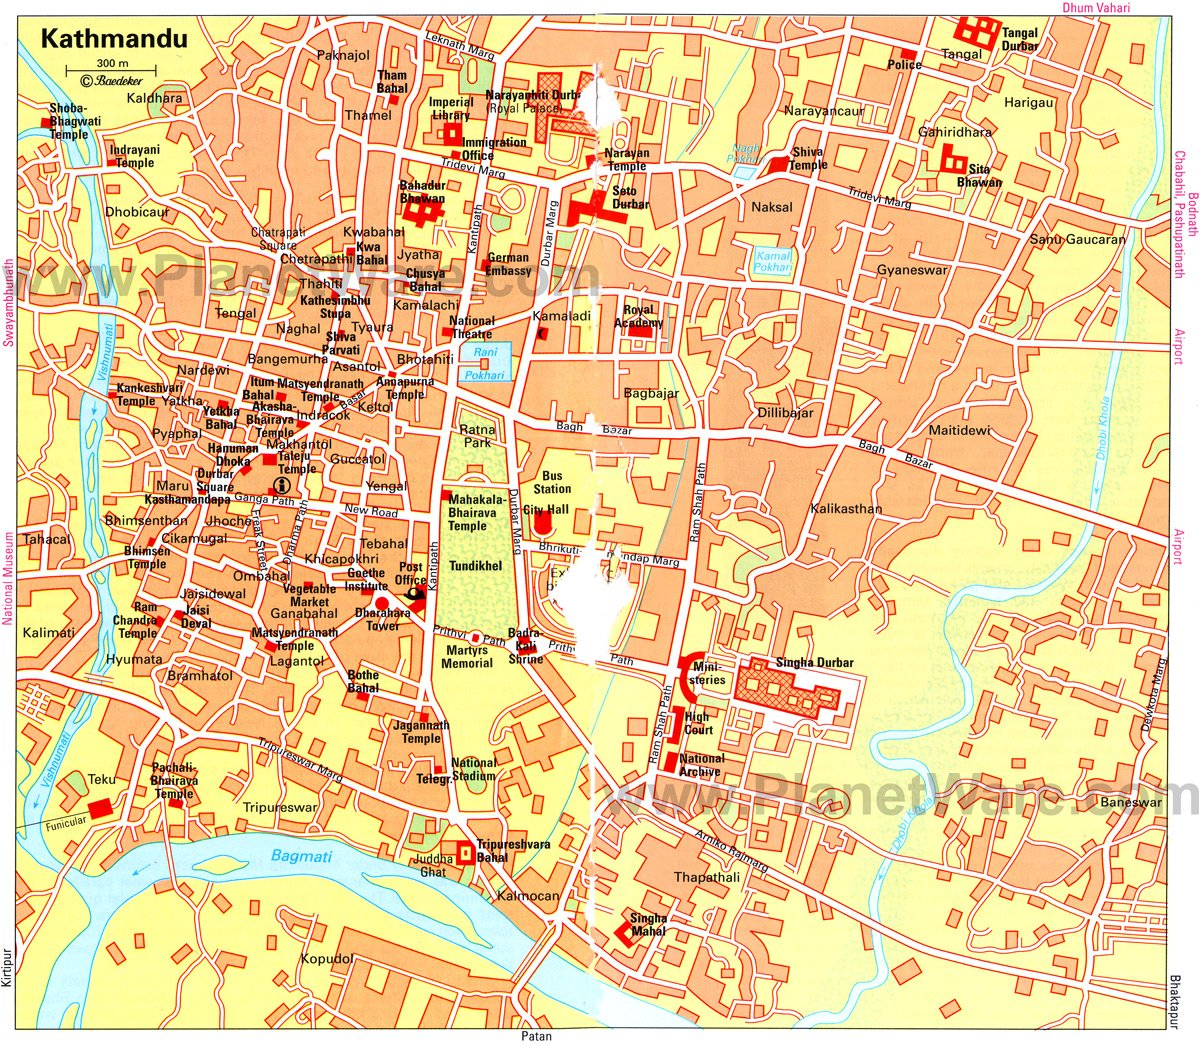 Kathmandu City Map - Tourist Attractions